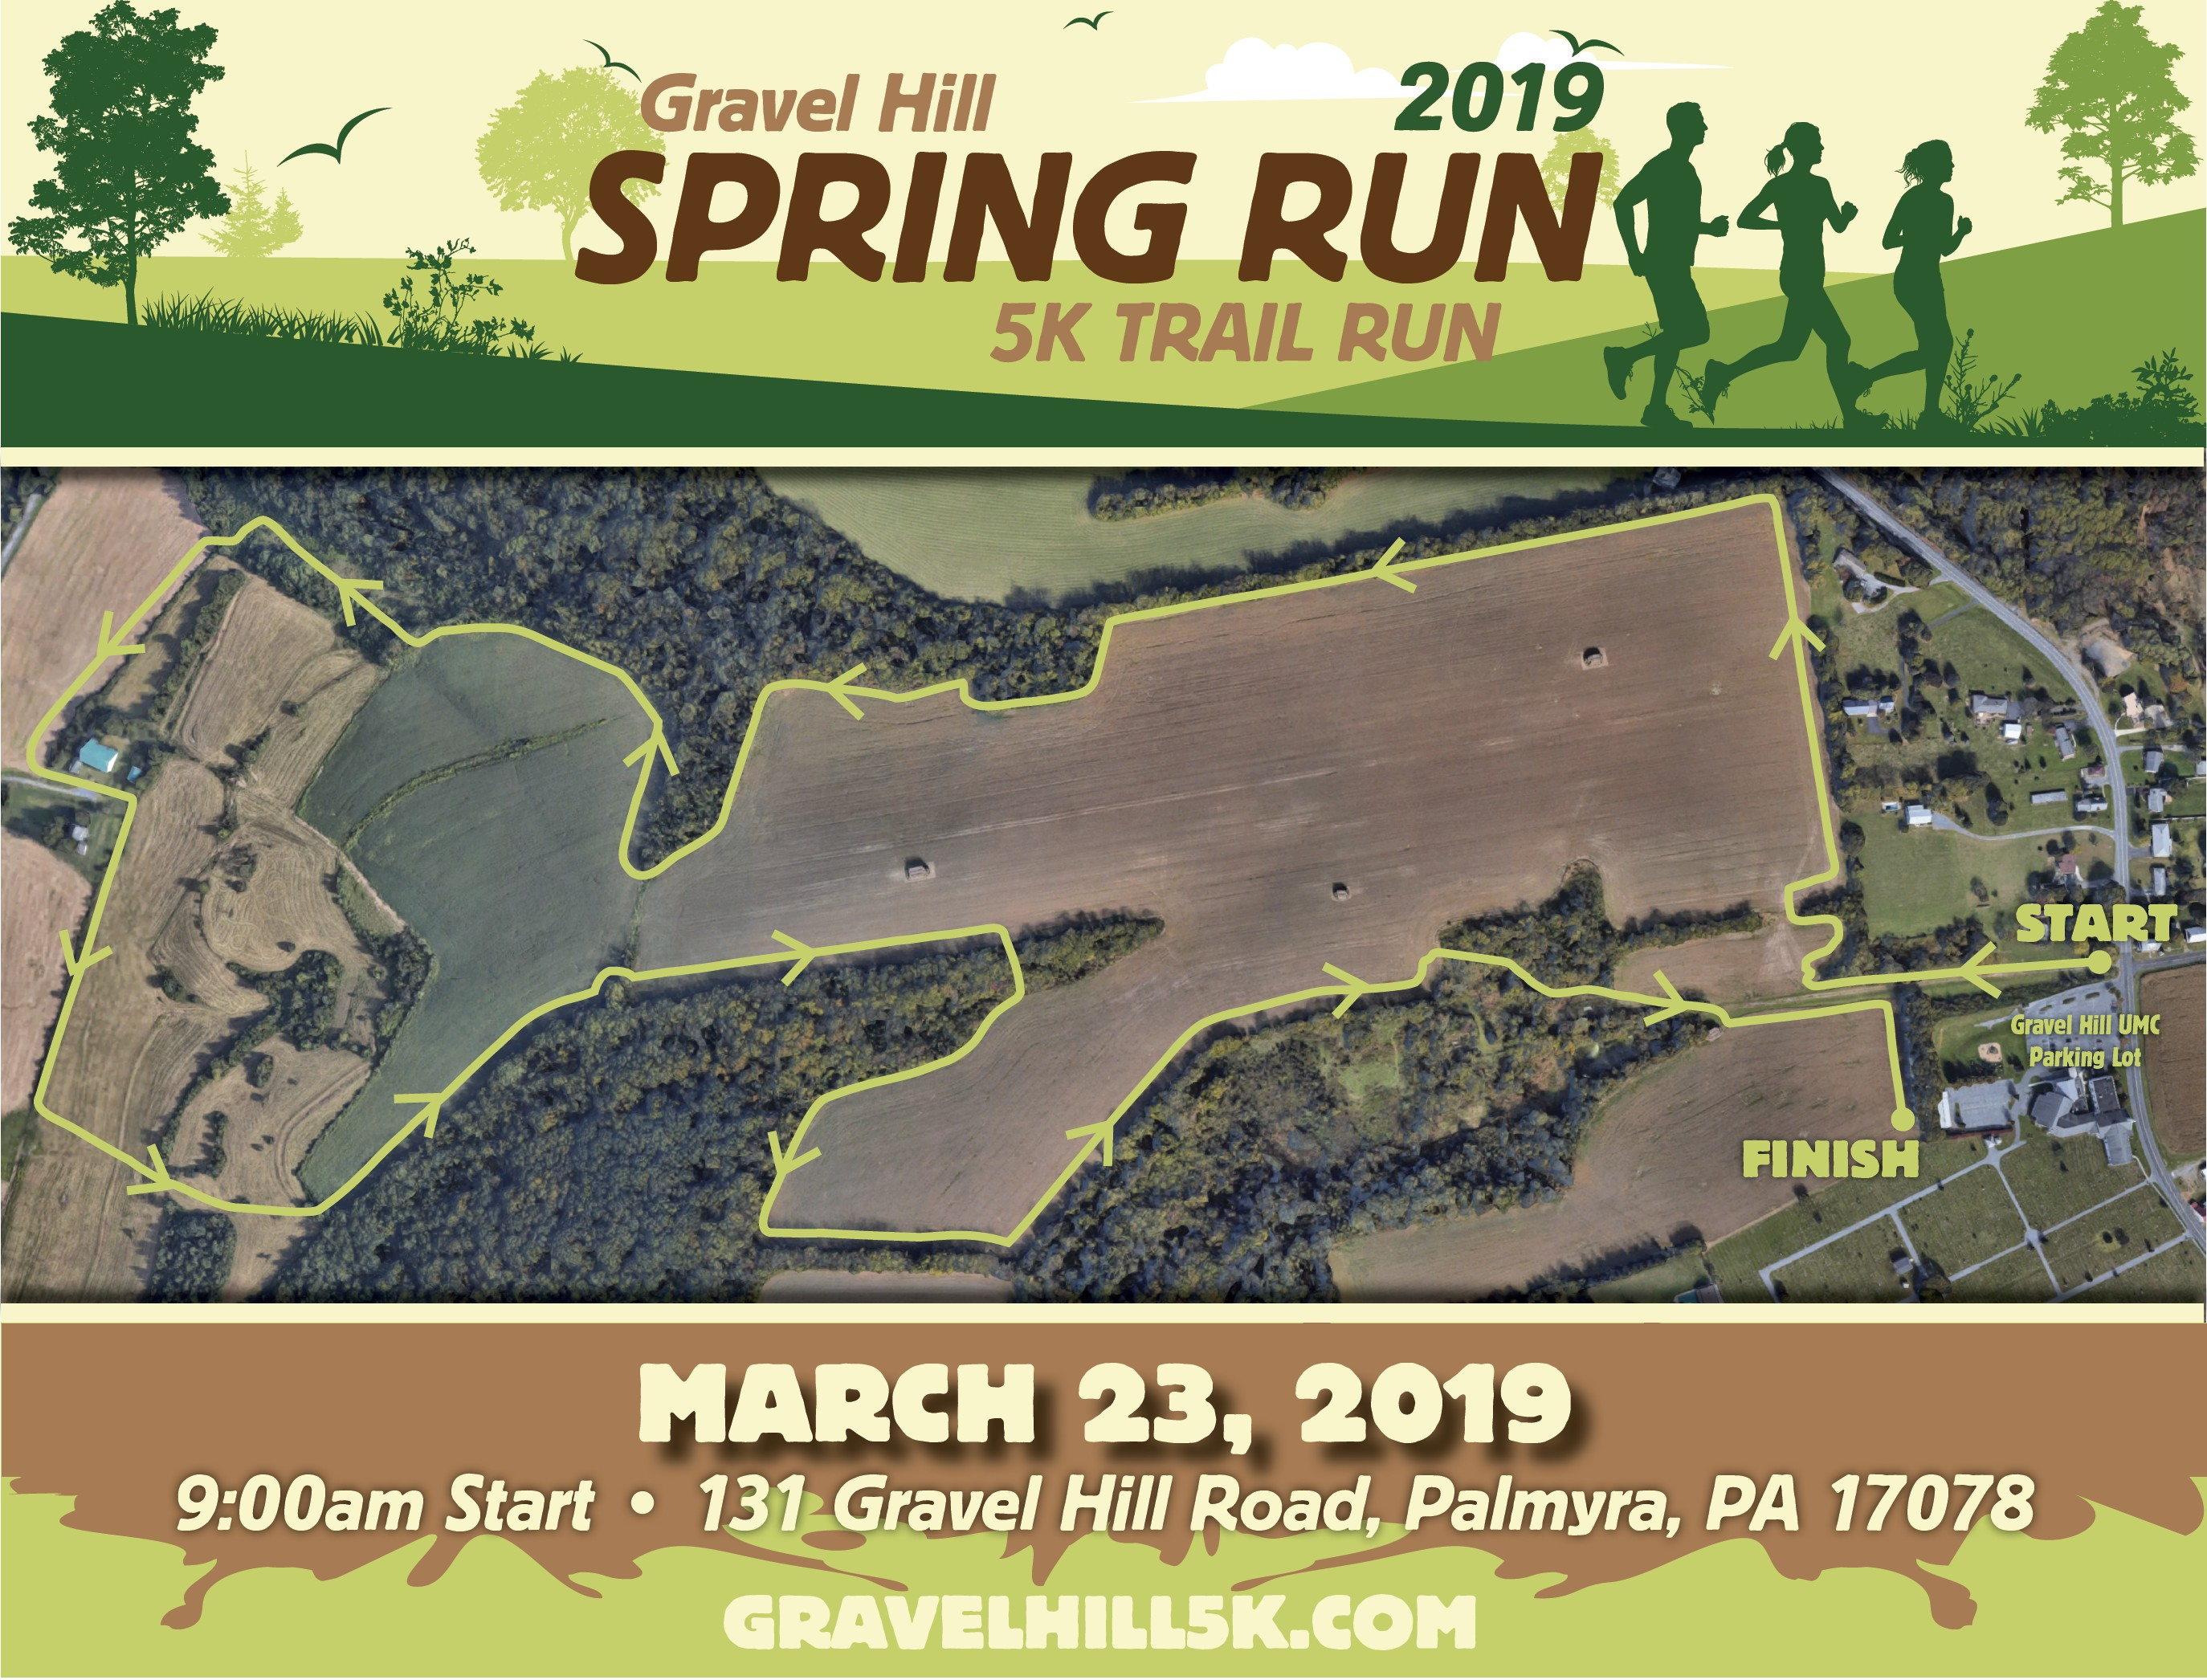 March 2019 Calendar Landscape Más Reciente Gravel Hill Spring Run 5k Ghumc Of March 2019 Calendar Landscape Más Arriba-a-fecha Travel with the Lakeland Chamber the israel Adventure May 24